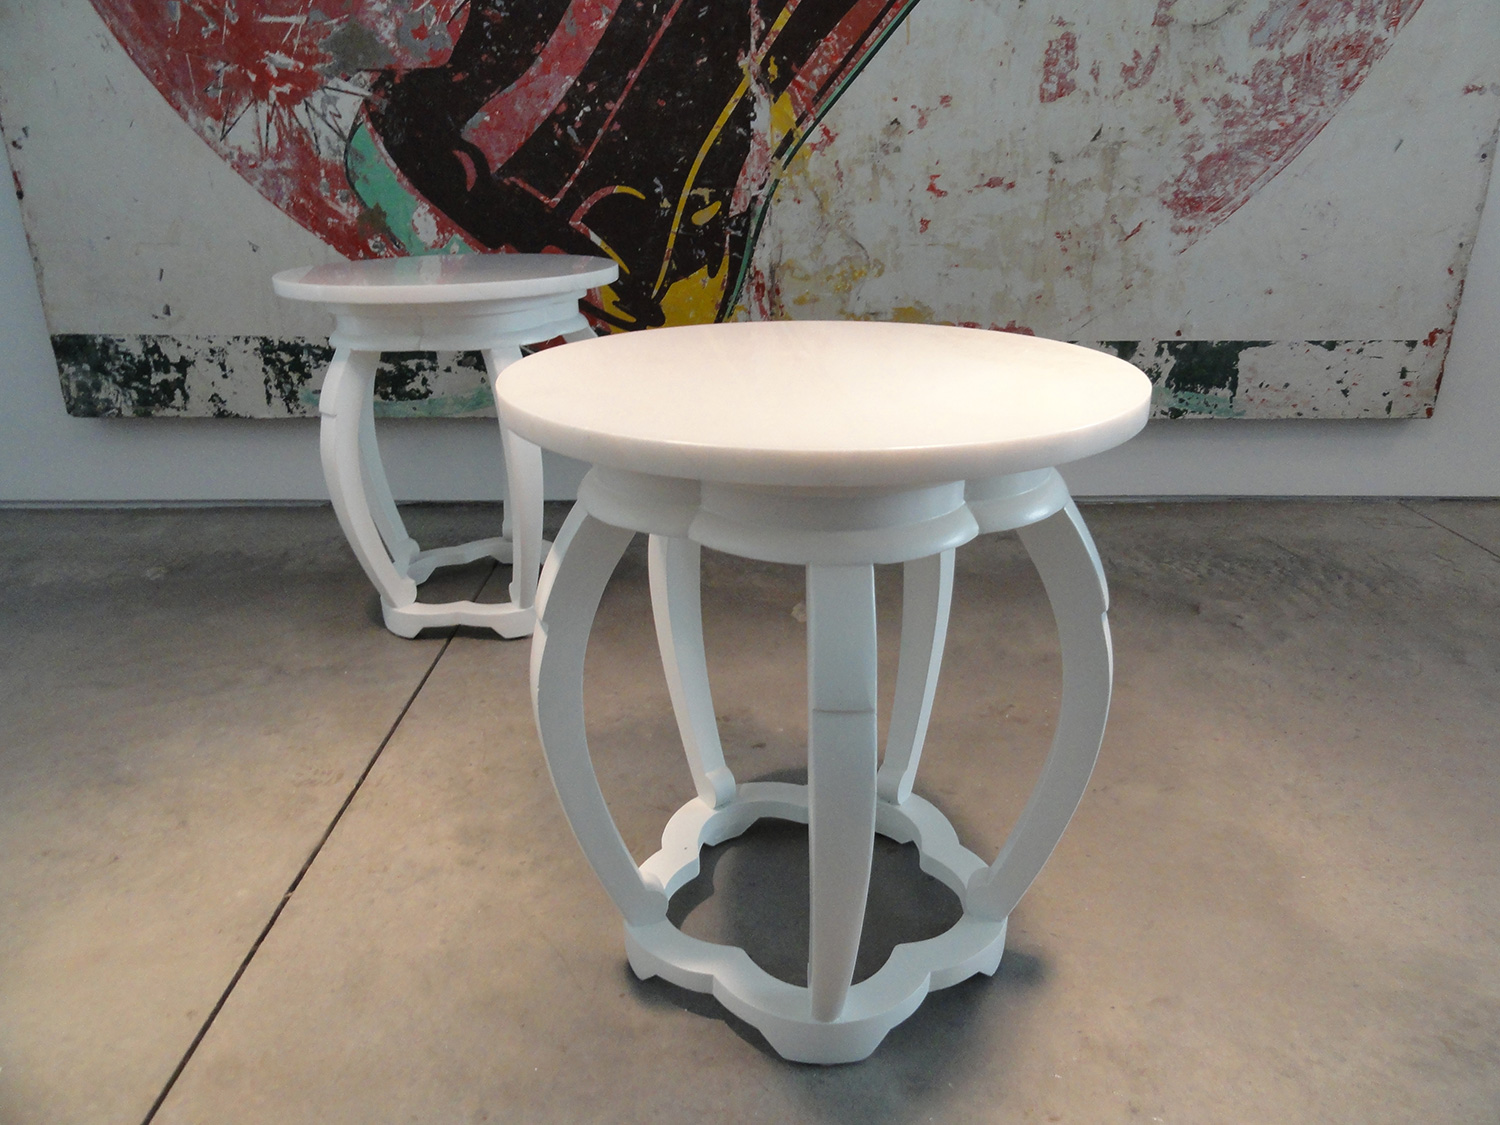 Opium side tables. I call them that because of the poppy-bud silhouette.